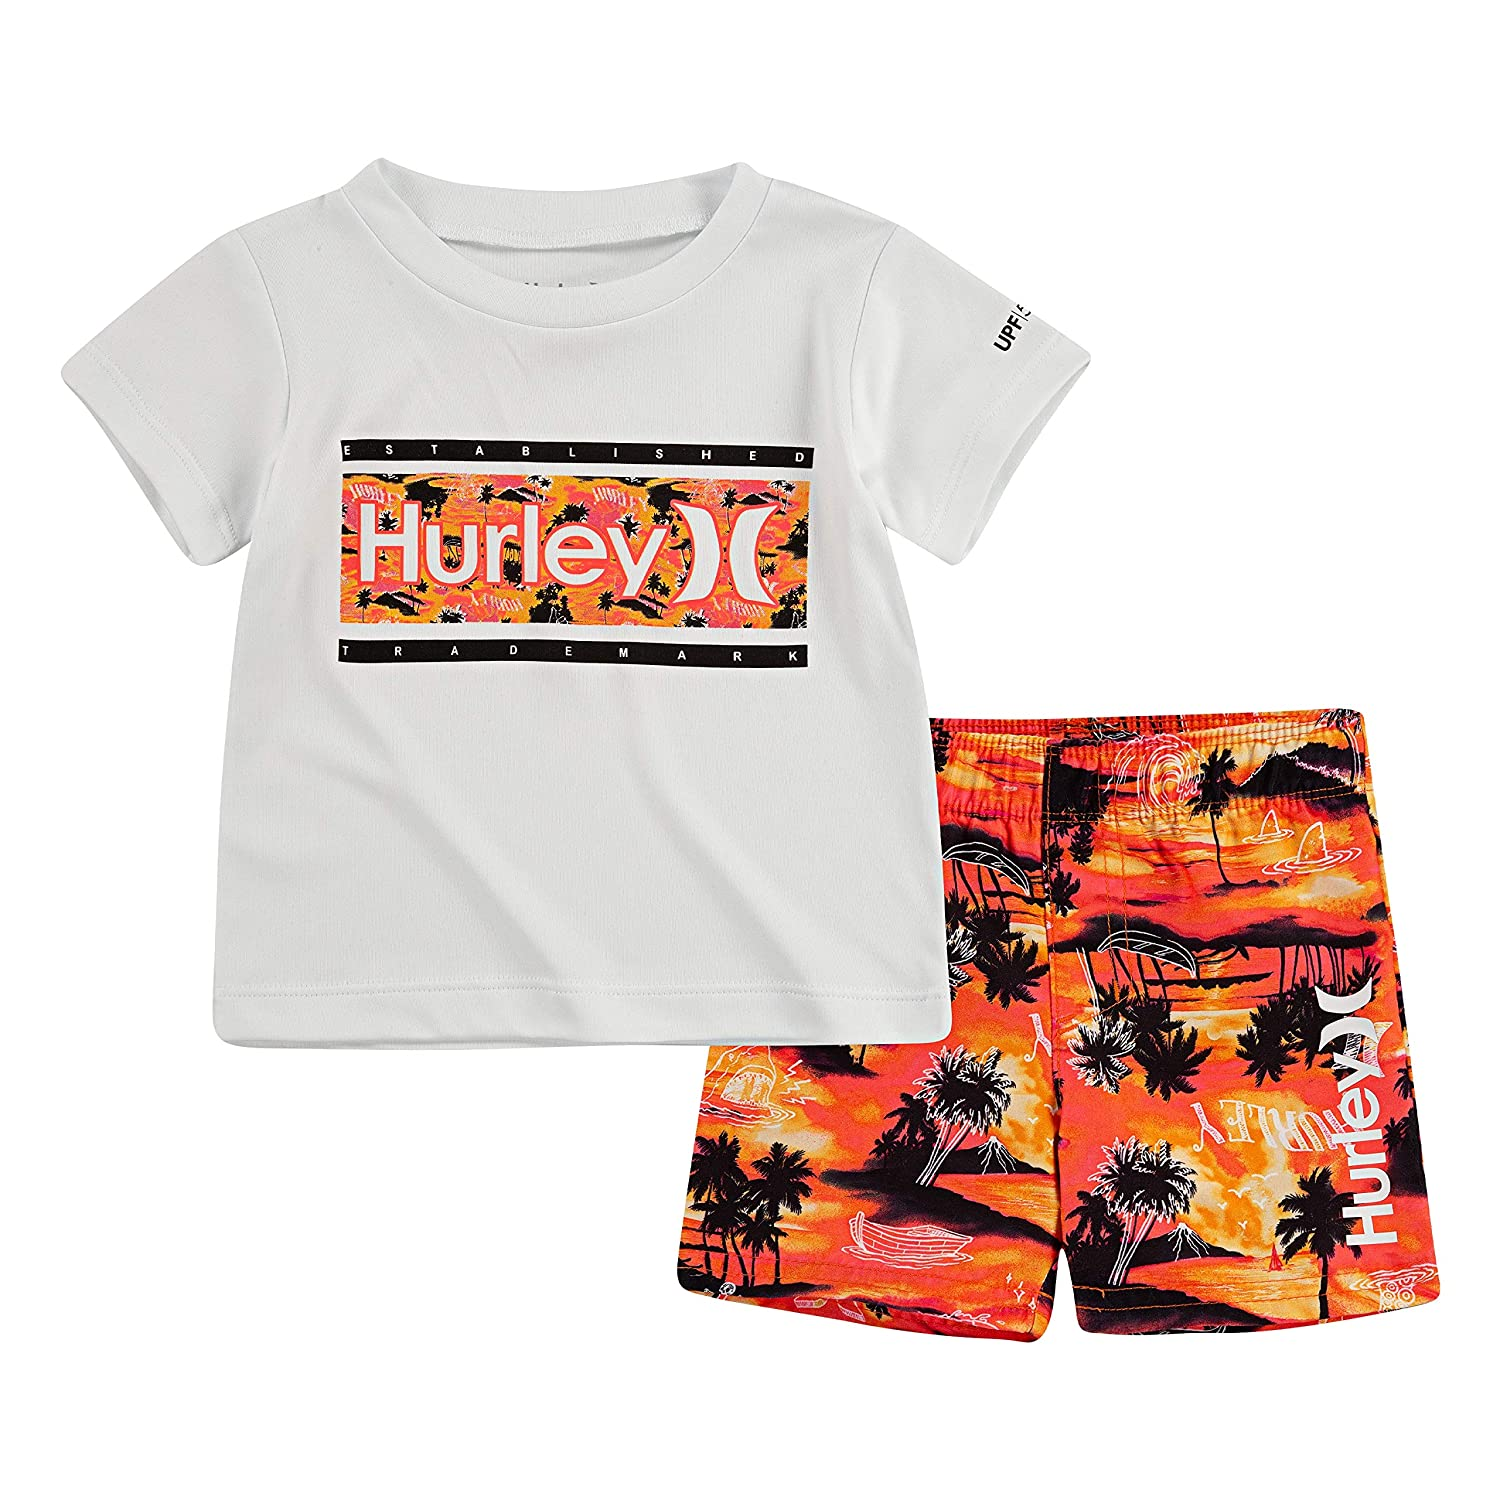 Hurley Boys Graphic T-Shirt and Swim Suit 2-Piece Outfit Set